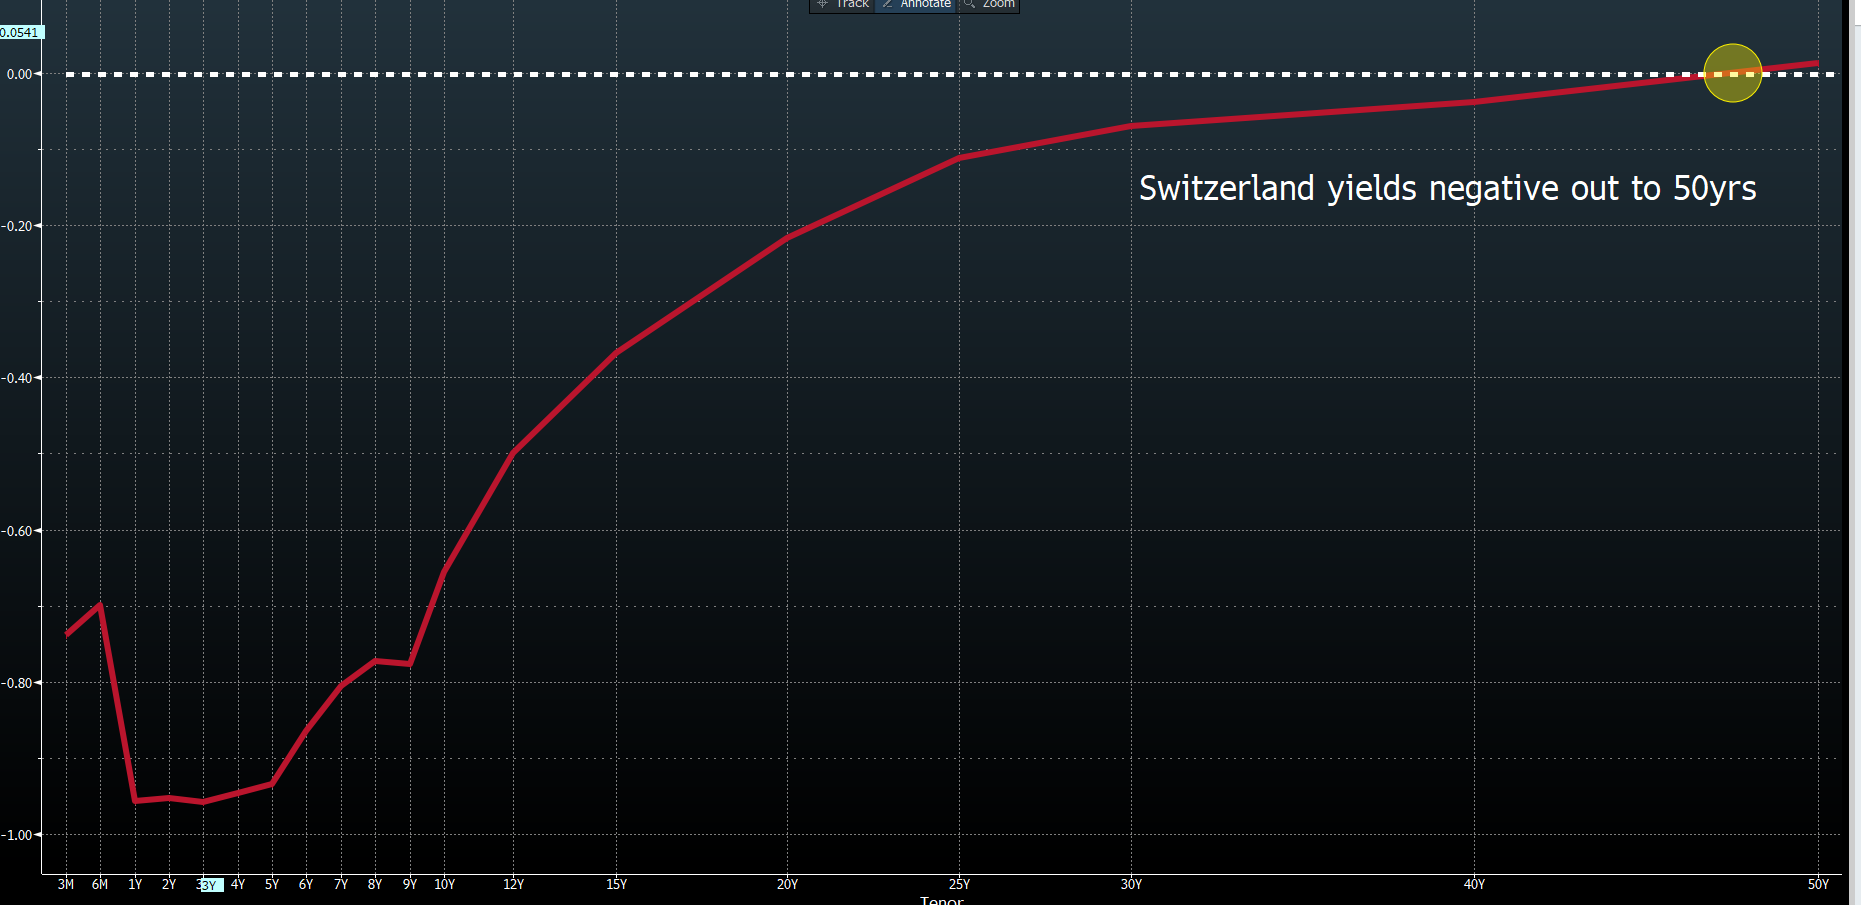 Switzerland yields negative out to 50 years